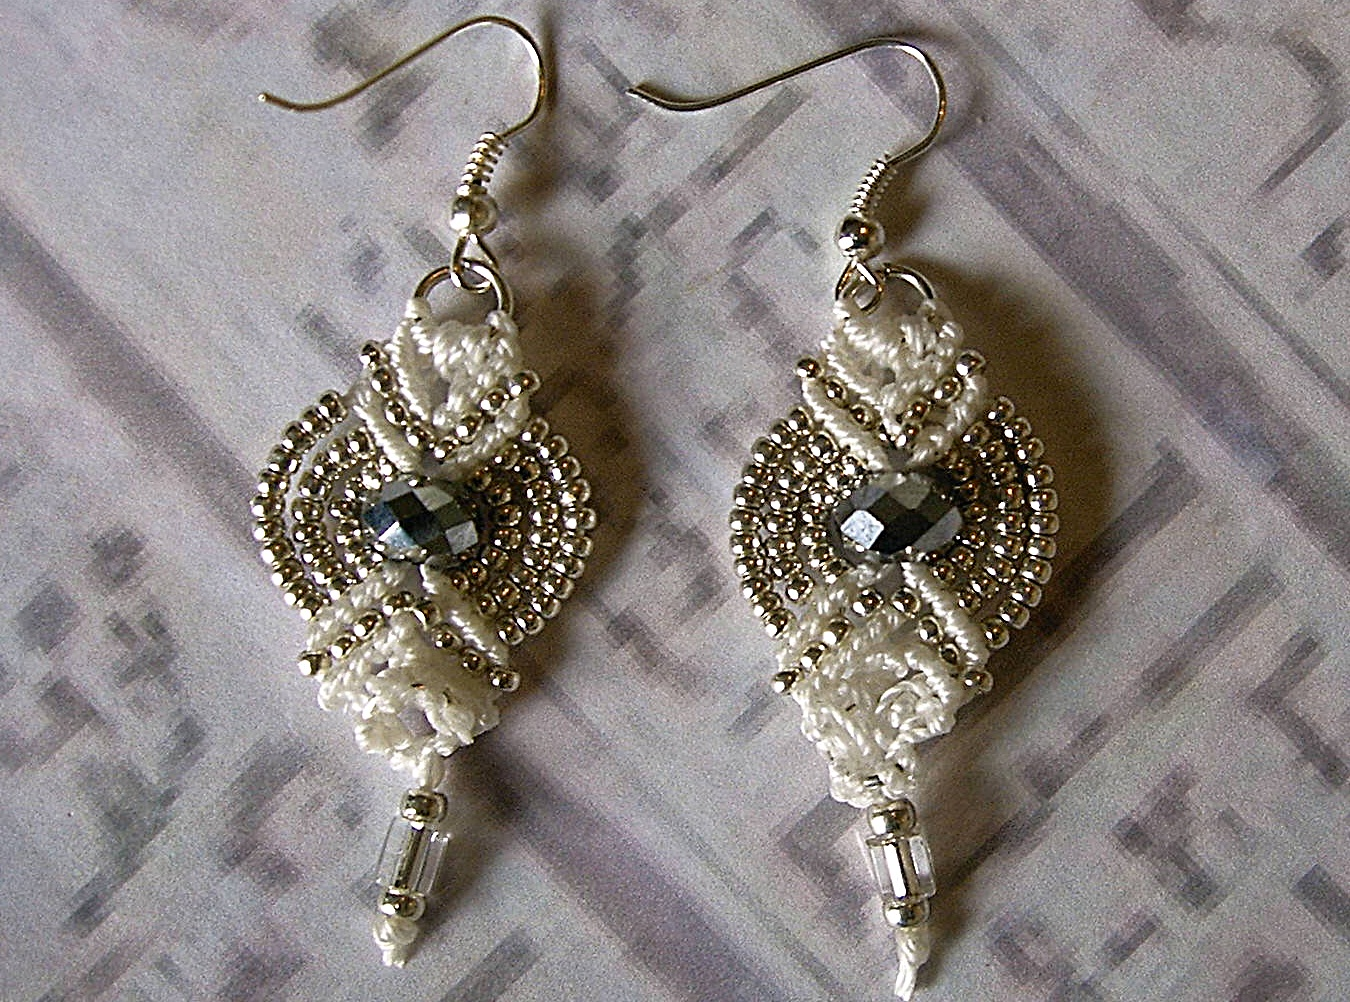 Earrings pinterest crochet